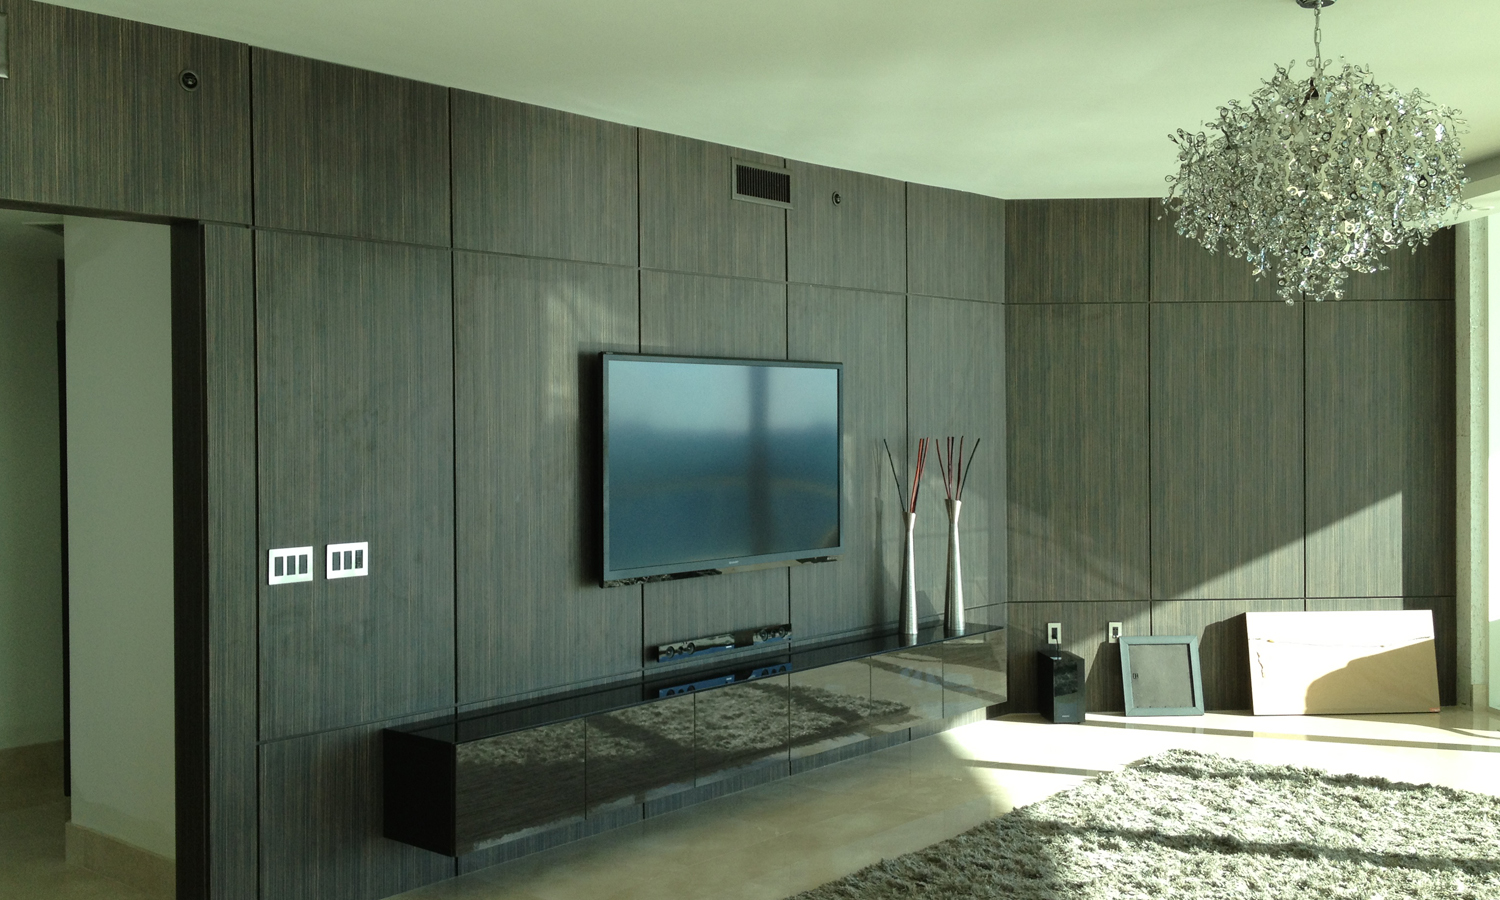 Dayoris Custom Wall Paneling  wall video.jpg